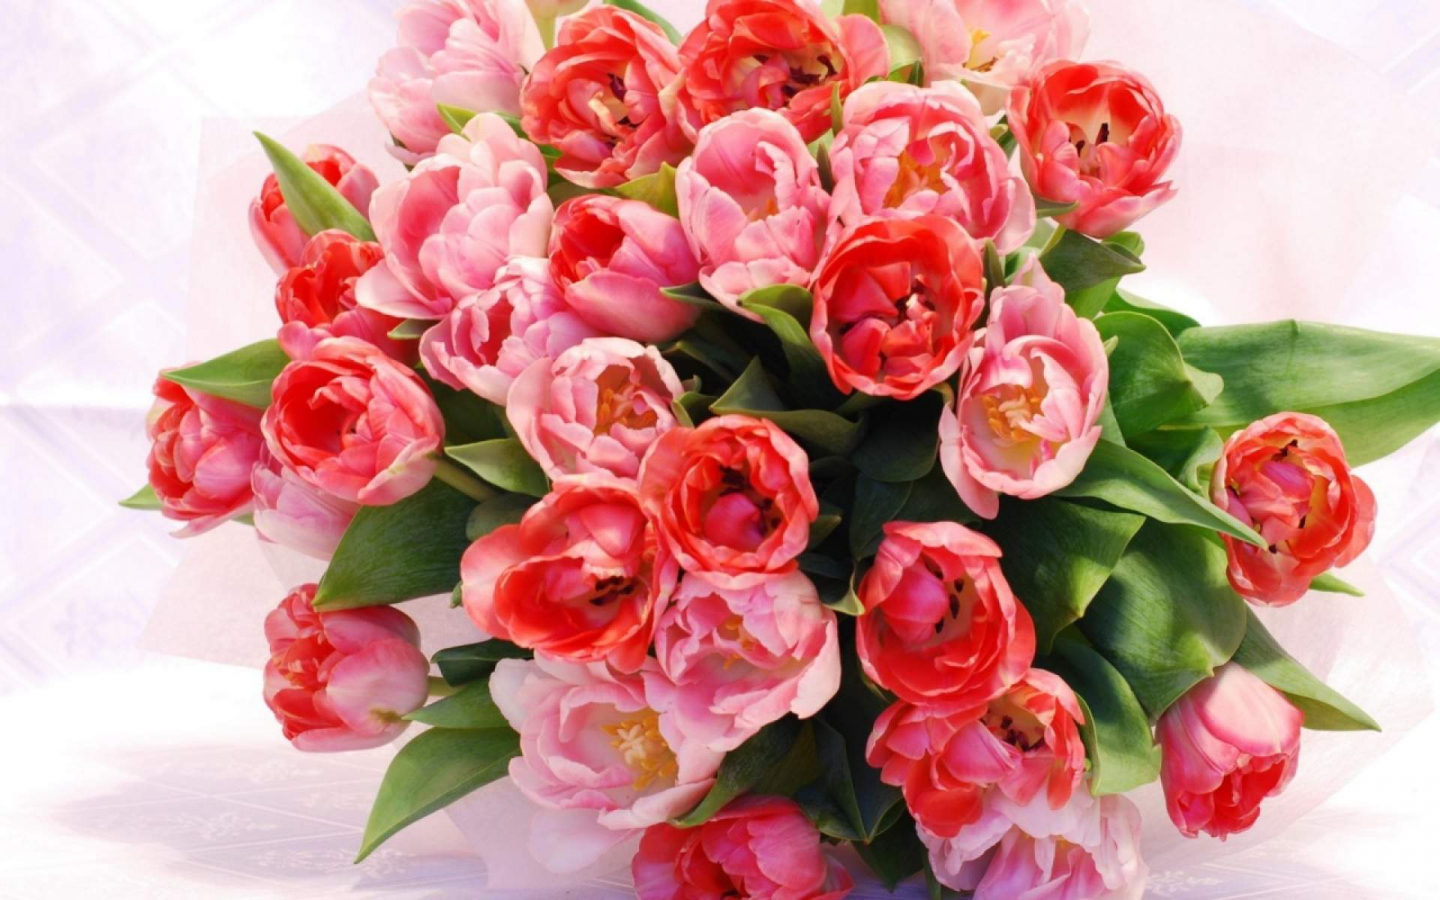 Desktop Wallpaper Red Tulips Bouquet Of Flowers Hd Image Picture Background Y5y Q8